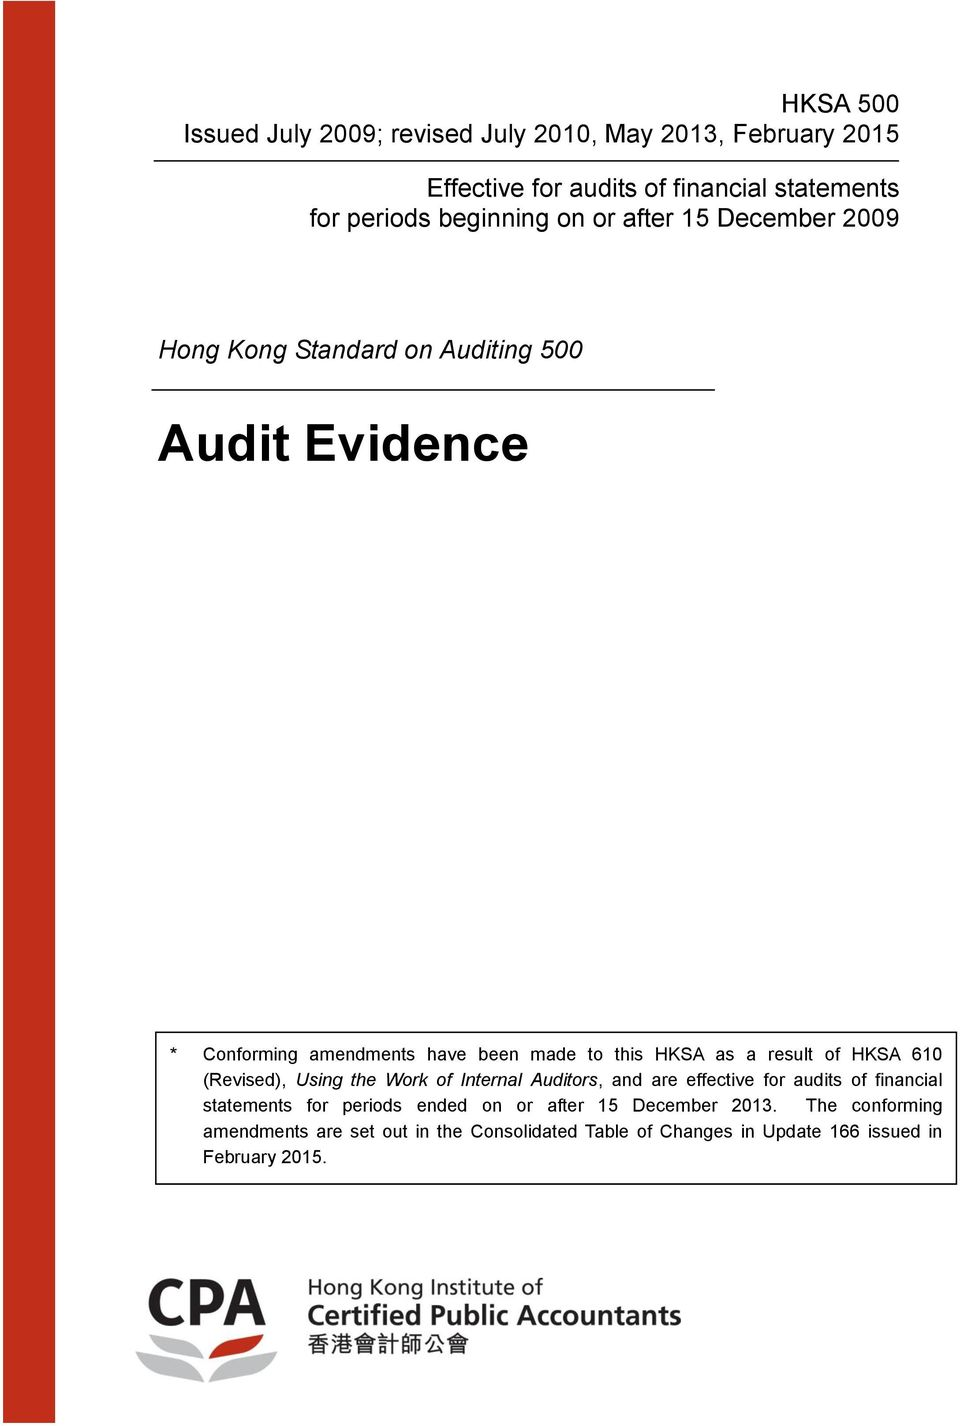 result of HKSA 610 (Revised), Using the Work of Internal Auditors, and are effective for audits of financial statements for periods ended